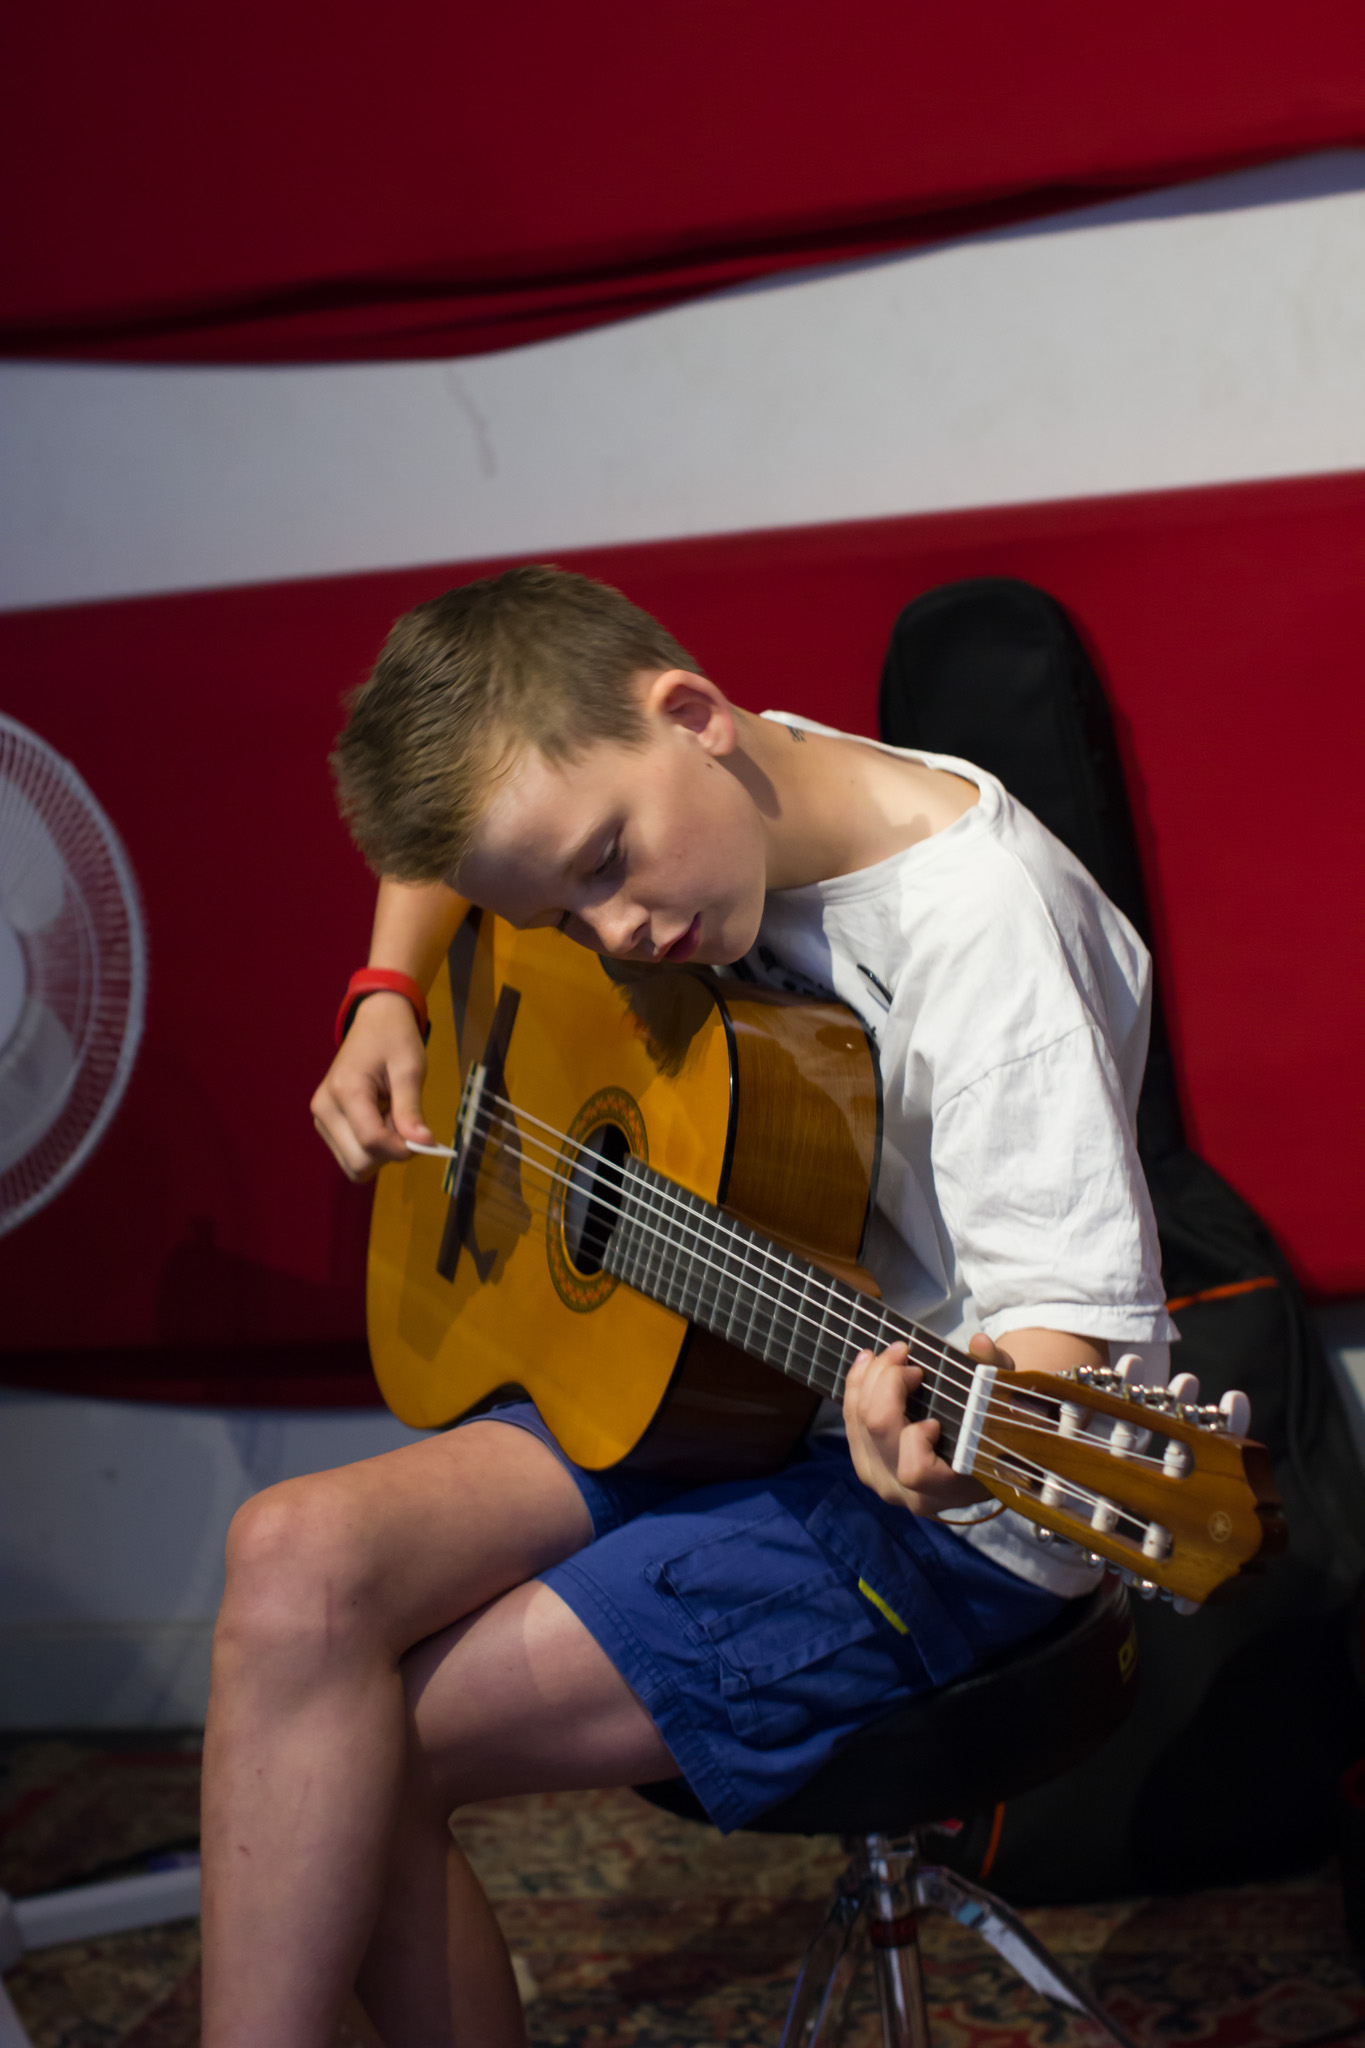 Ben playing his guitar during his group guitar lesson in Melbourne, Australia